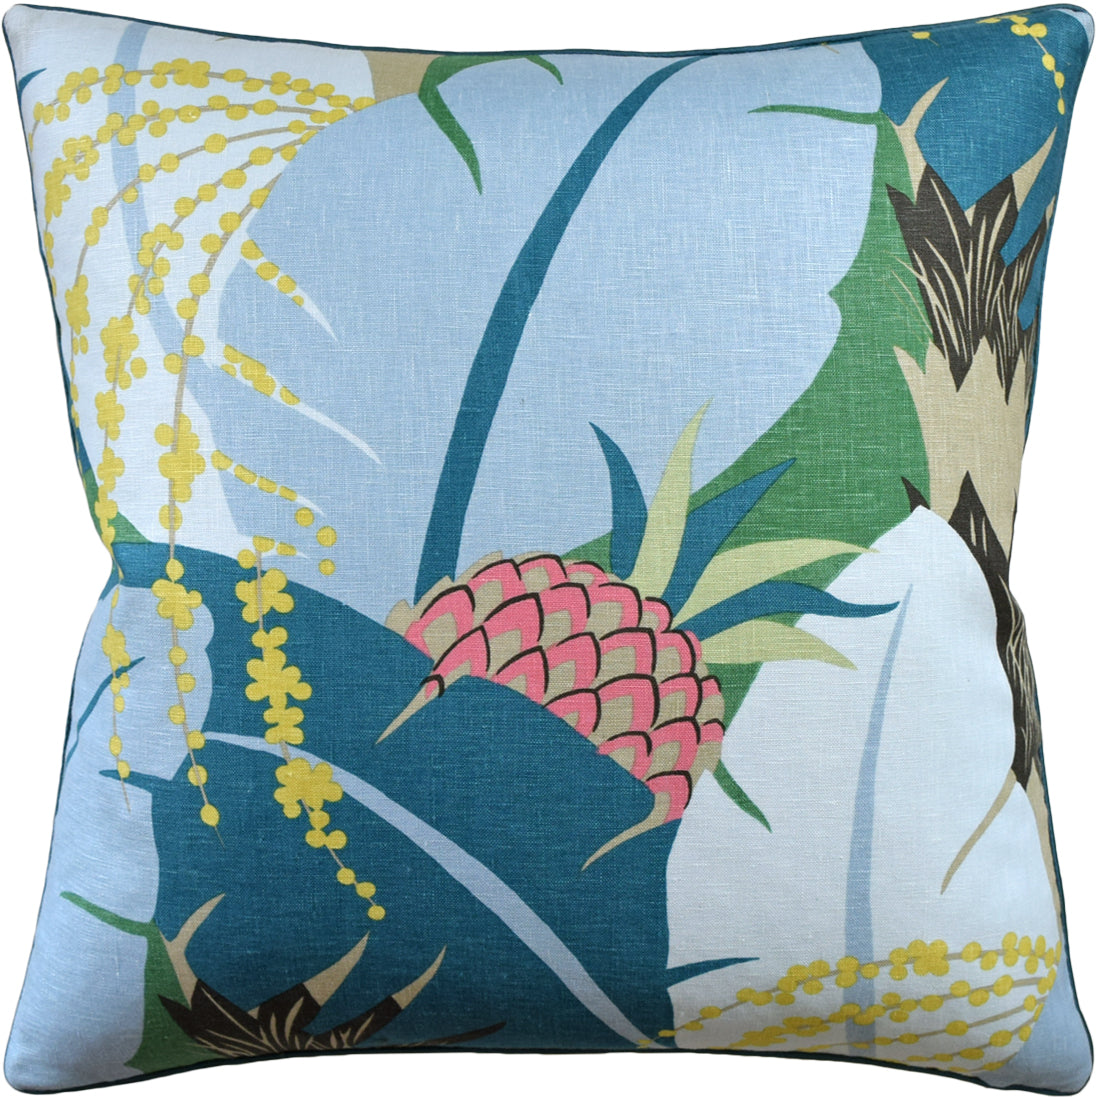 Ryan Studio Ananas Pillow in Peacock